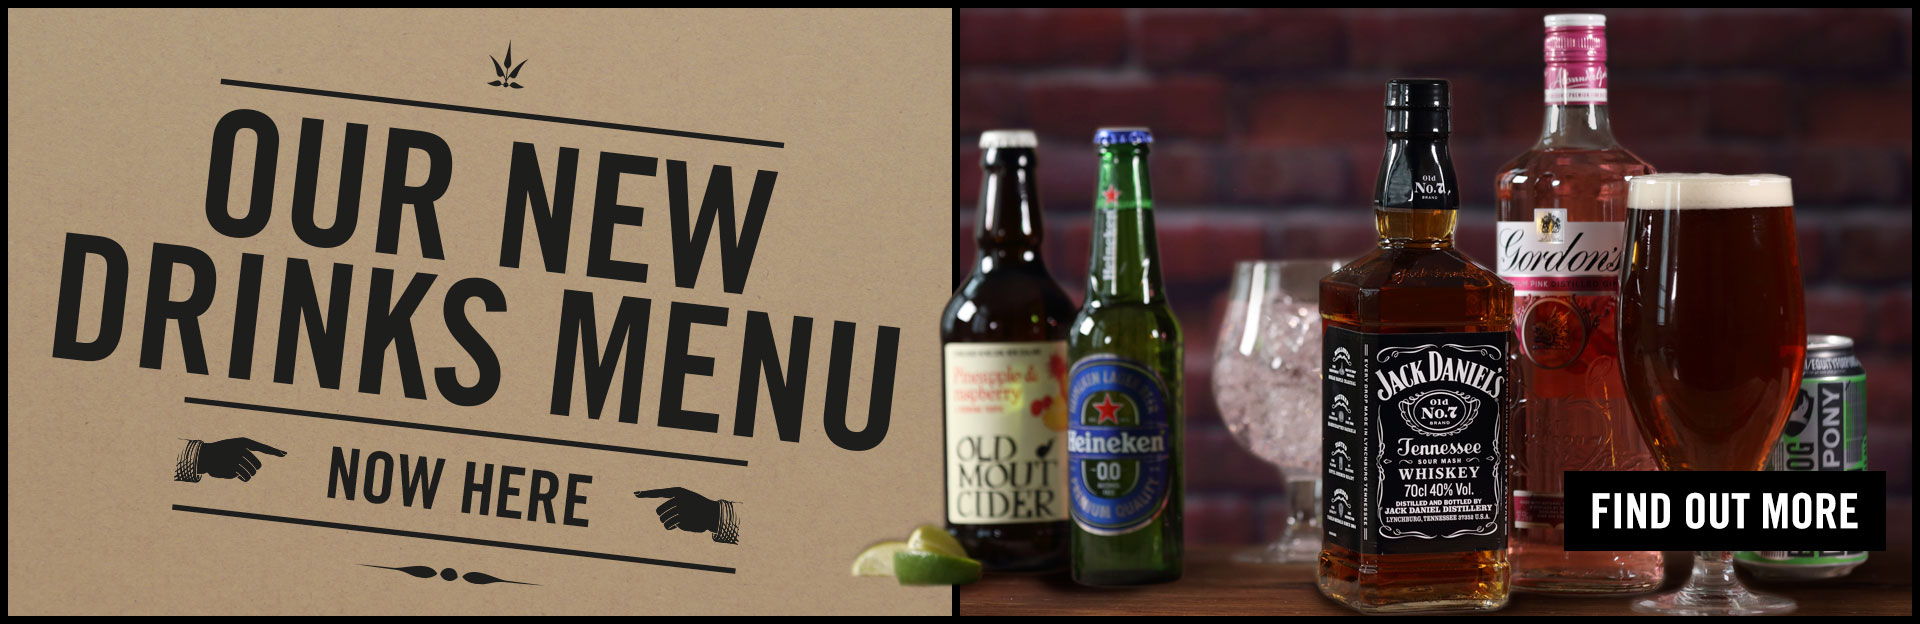 New Drinks Menu Coming Soon at County Hotel